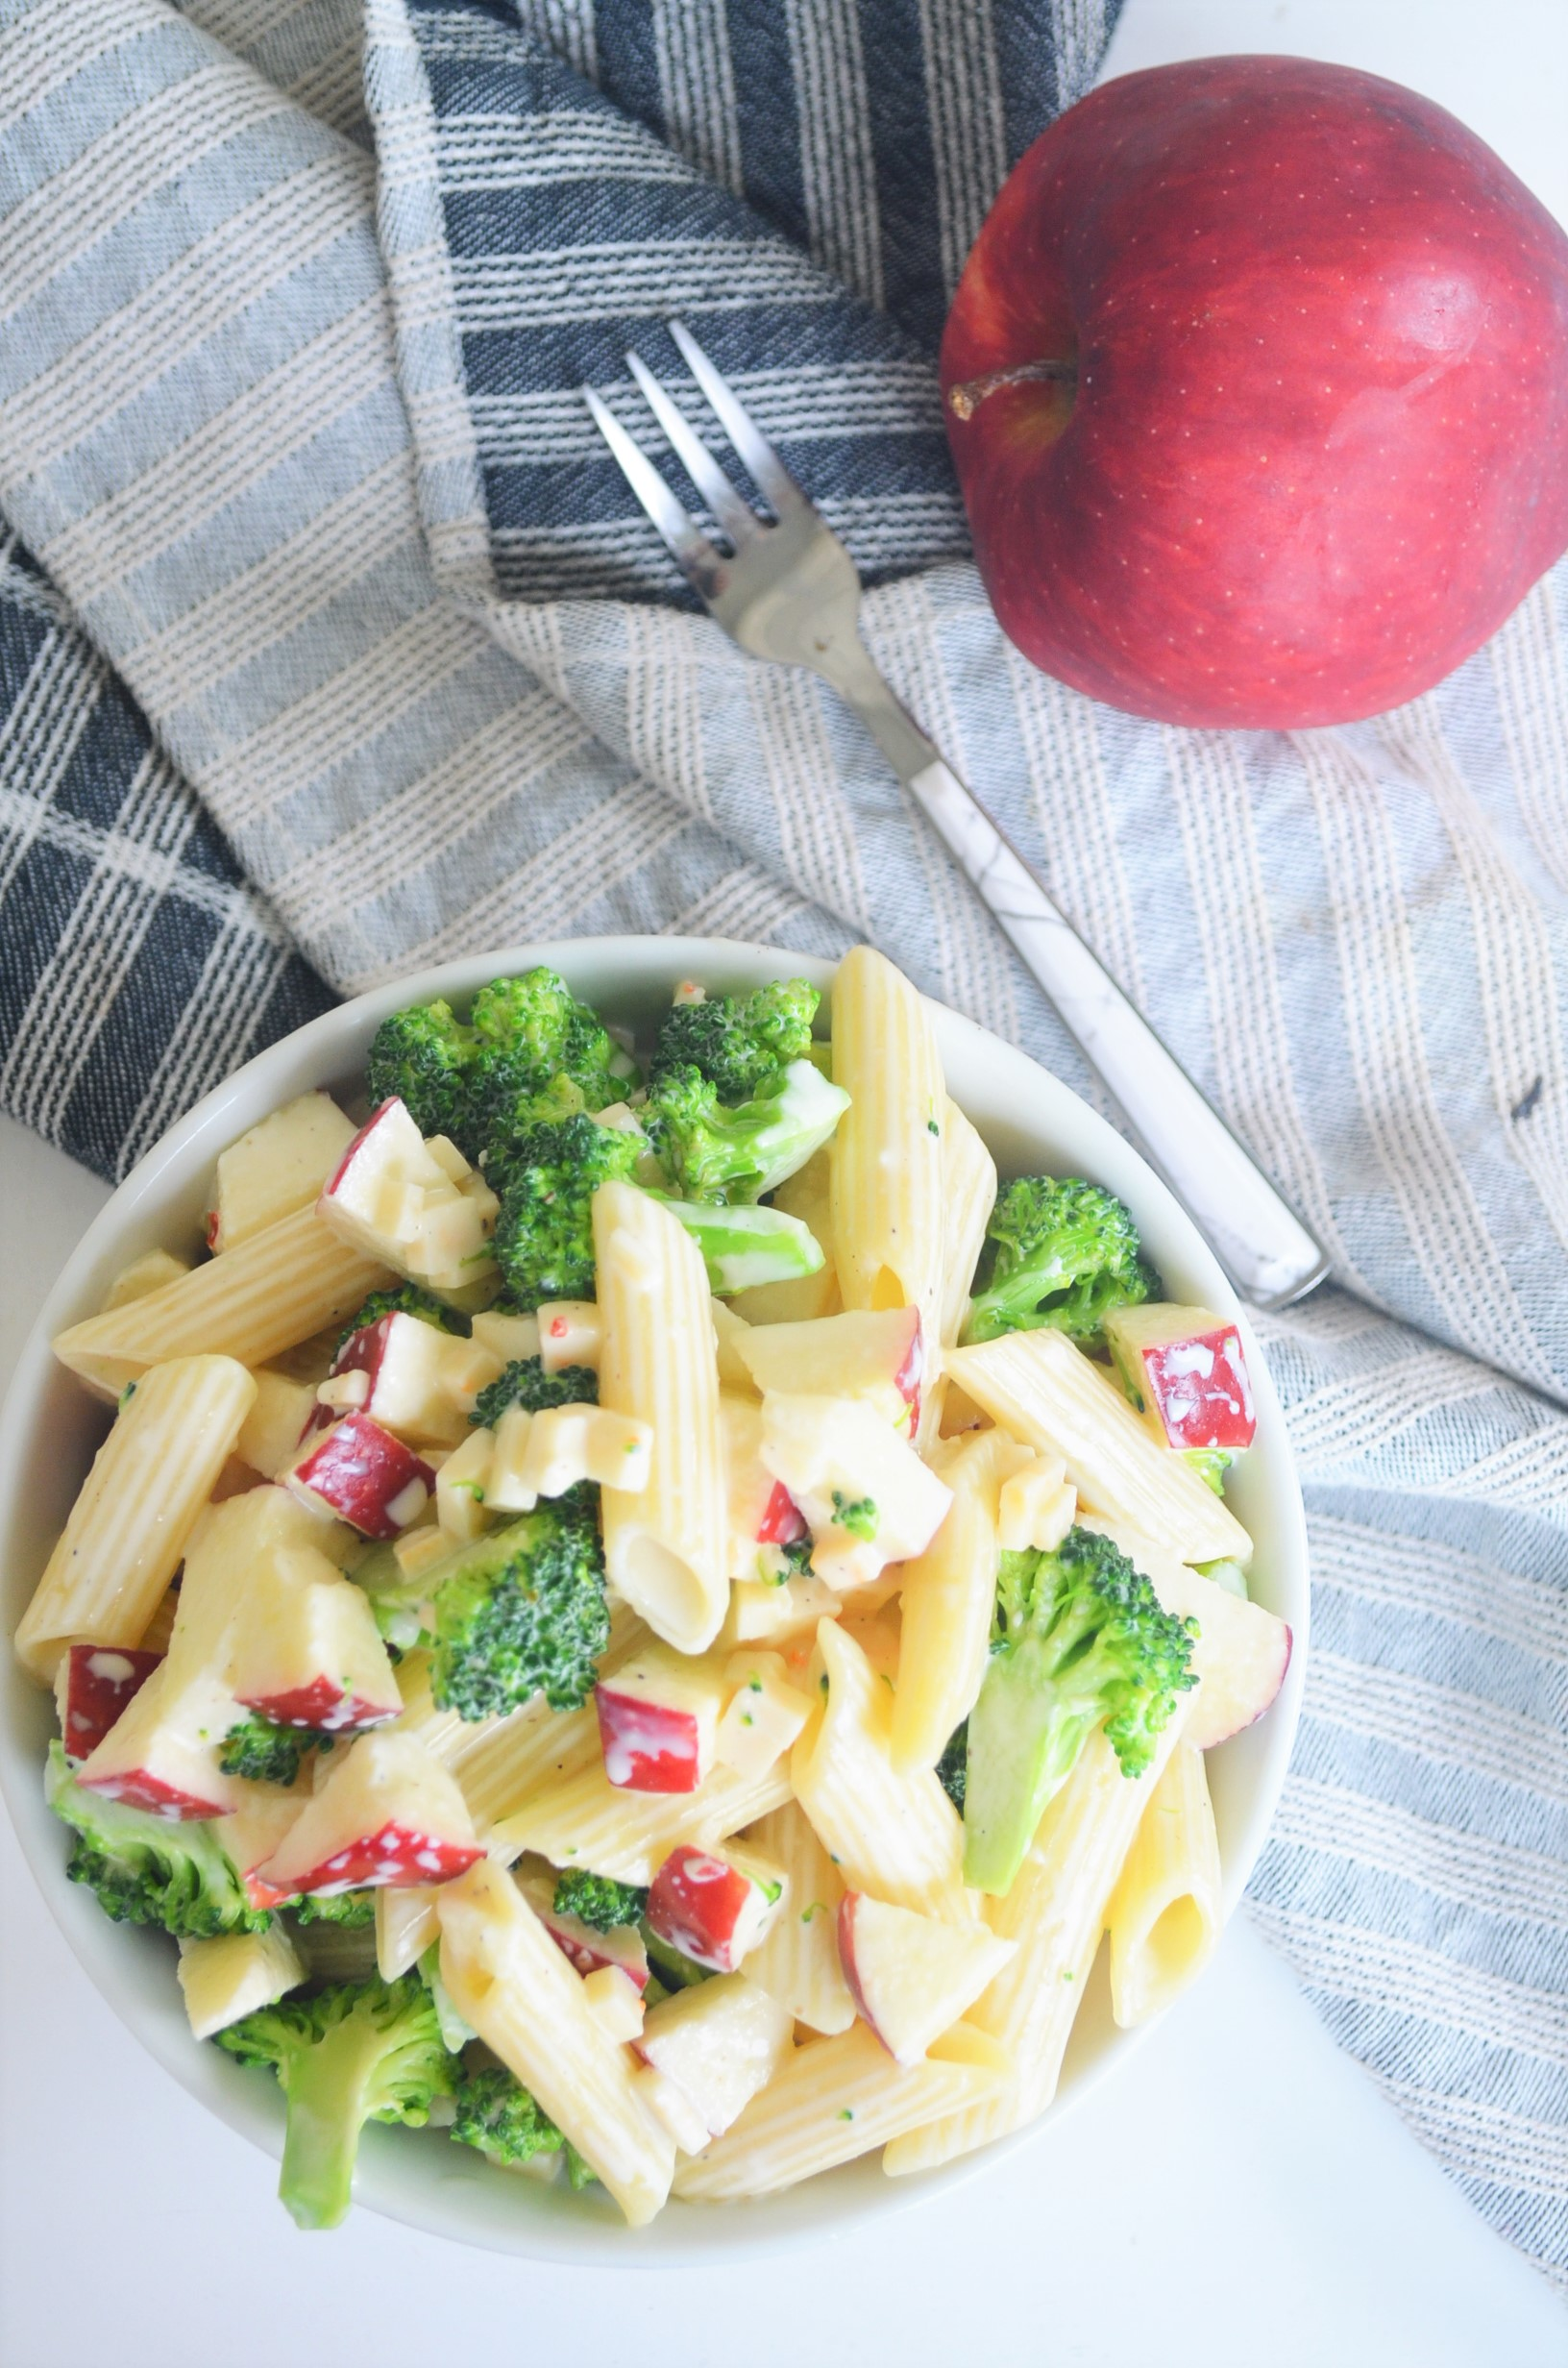 Apple Pasta Salad